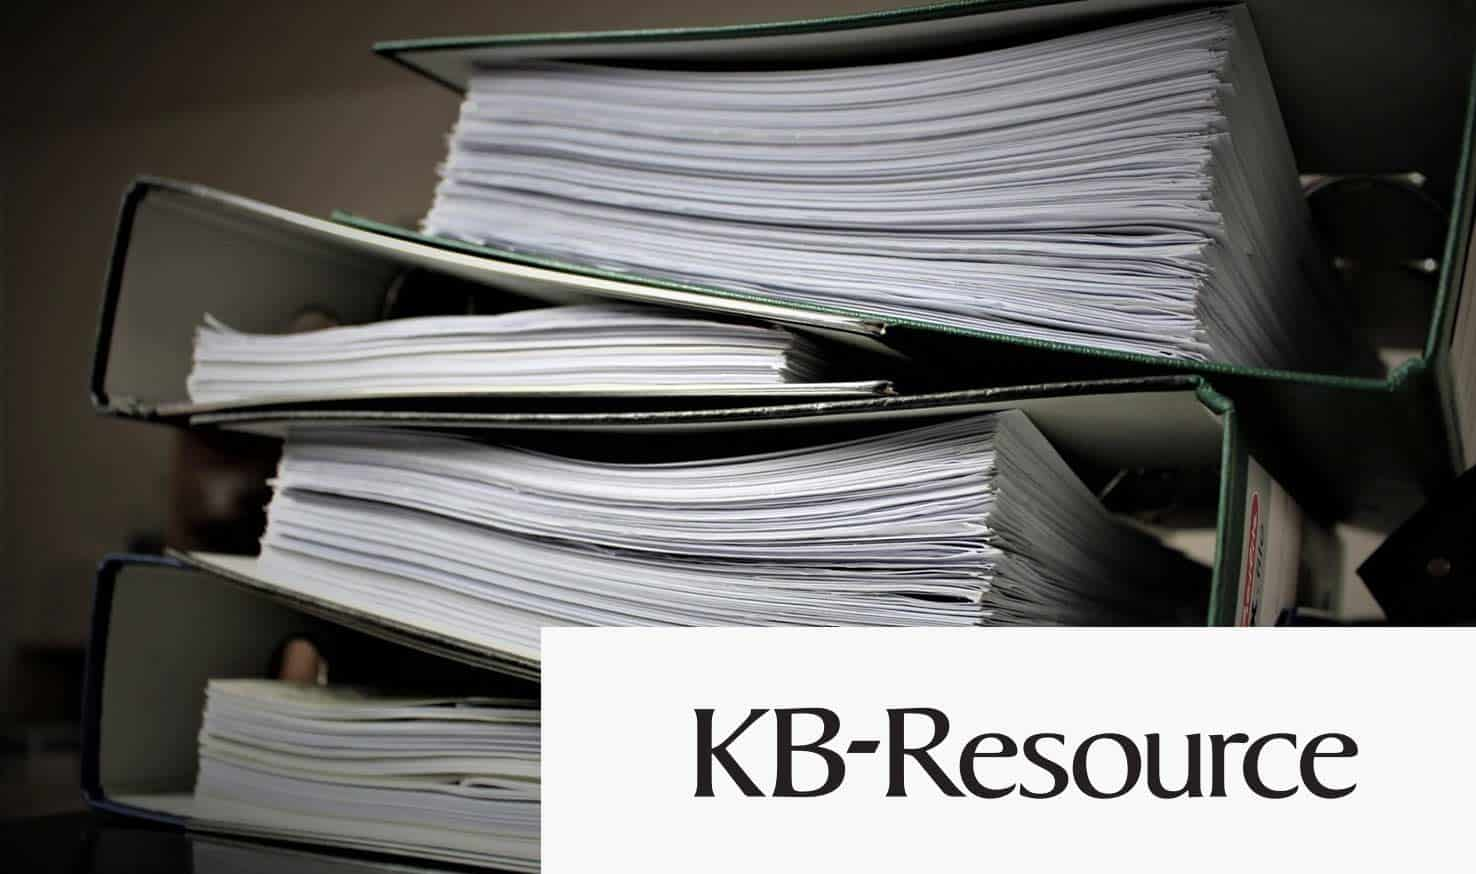 book cases for kb resource